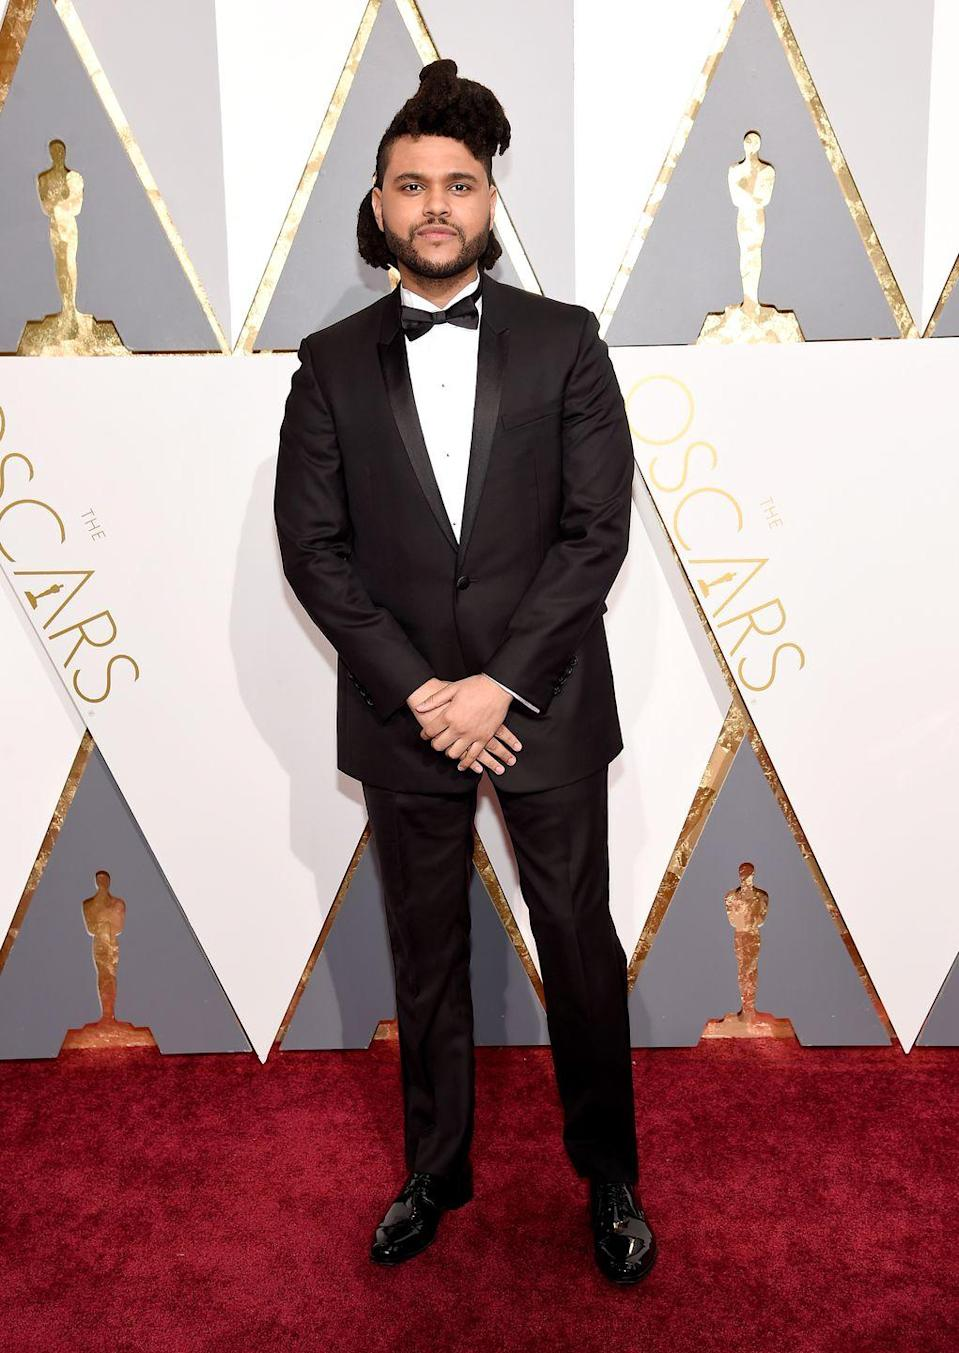 <p>The Oscars are nothing if not an opportunity to flex, so naturally Tesfaye turned up in a perfectly tailored shawl-collar tuxedo that whispers—so you have to lean in real close to listen—instead of shouts.</p>